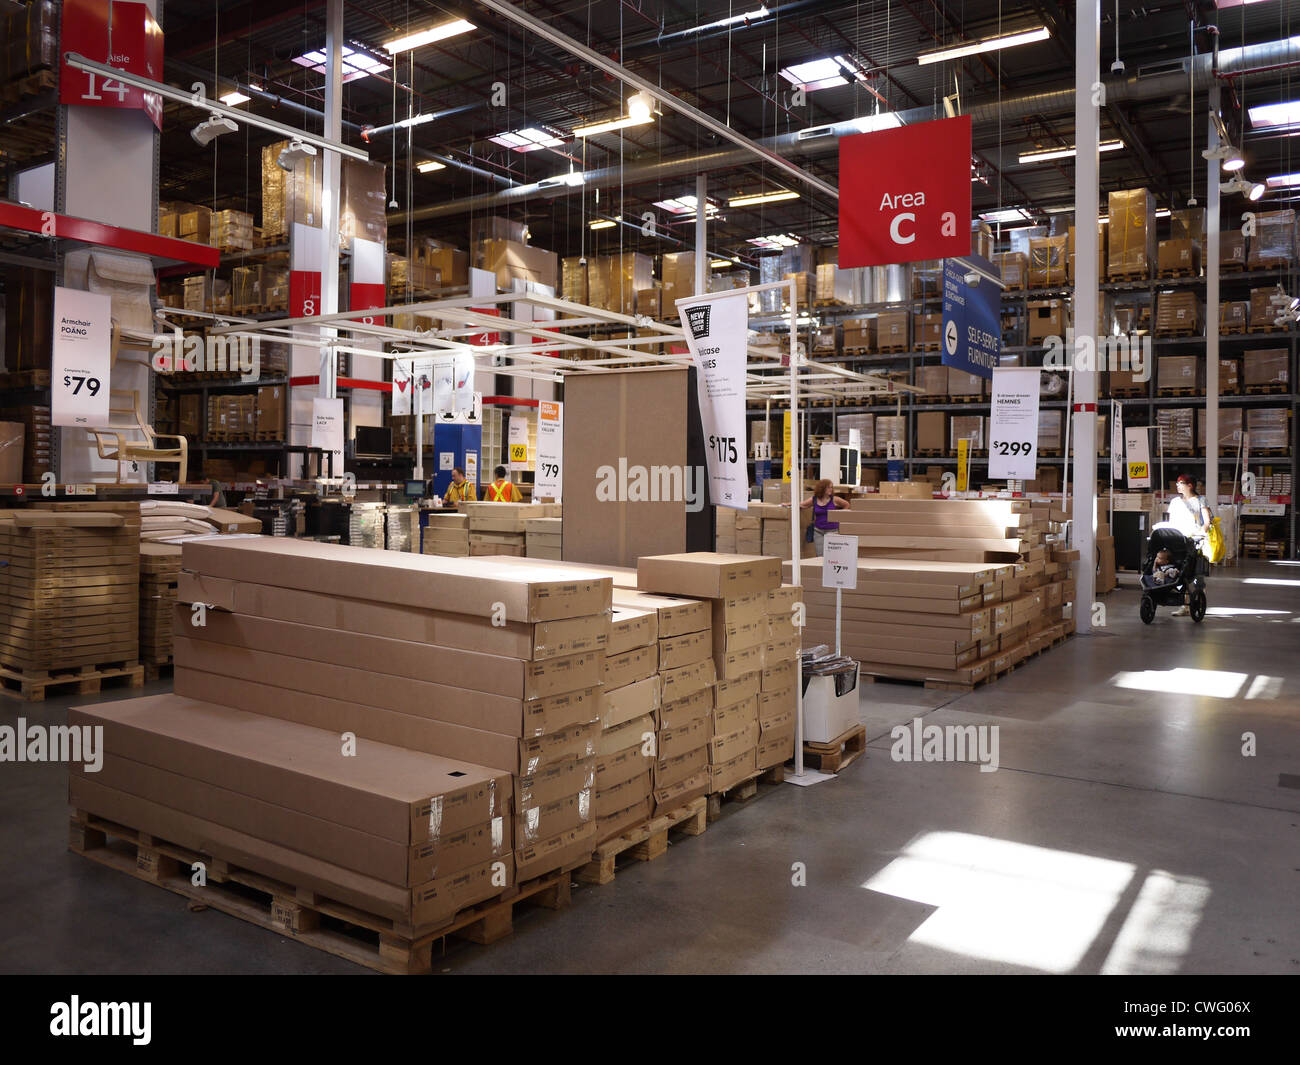 Ikea warehouse furniture store interior inside stock photo for Ikea locations plymouth meeting pa